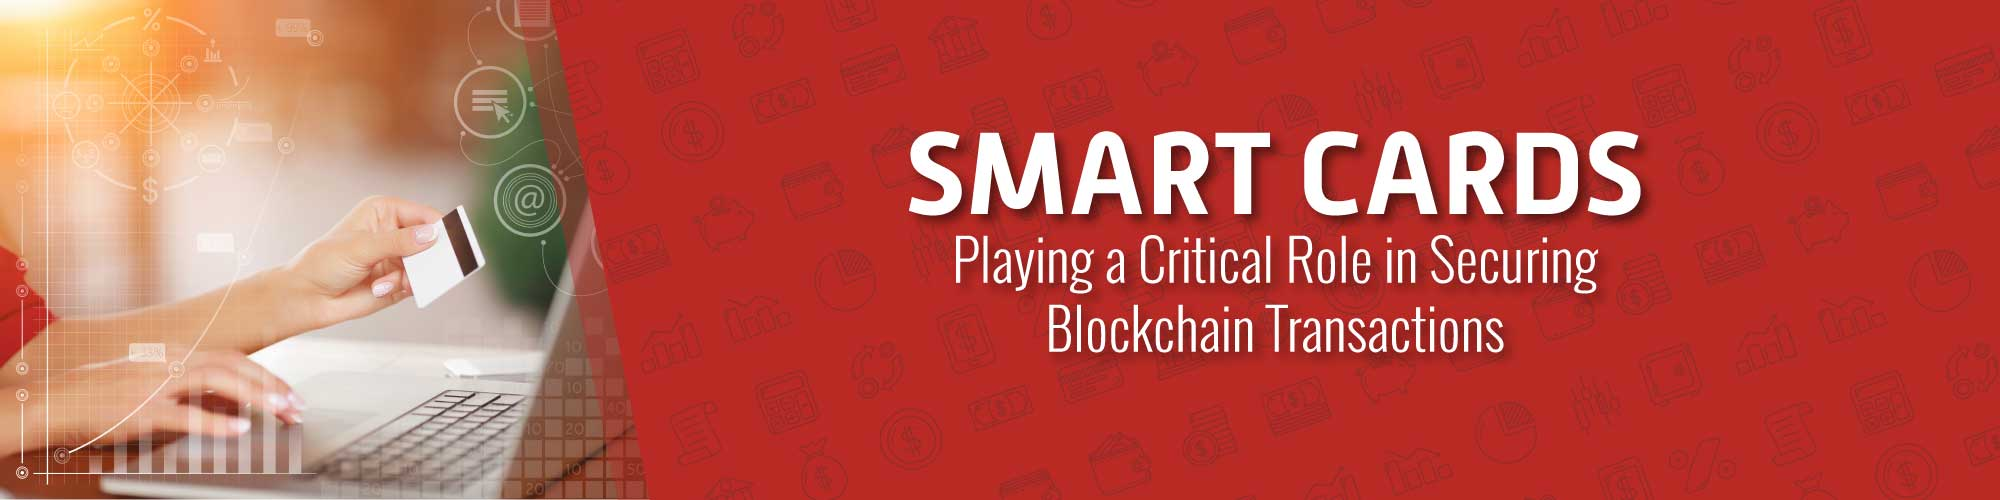 Smart-Card-and-Blockchain_0